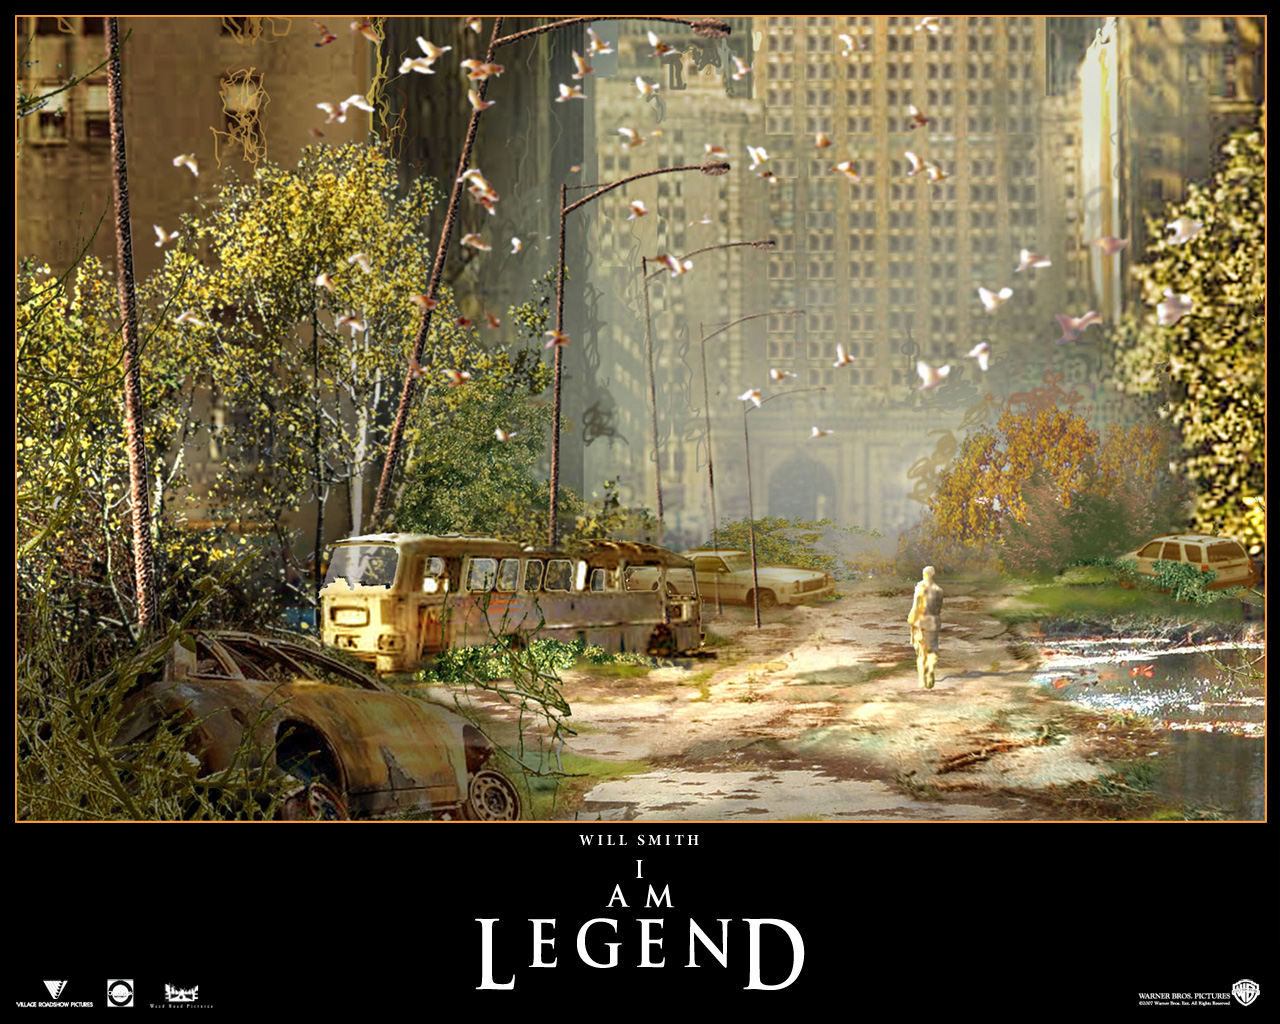 Am Legend Wallpapers Decrepid I Am Legend HD Wallpapers 1280x1024